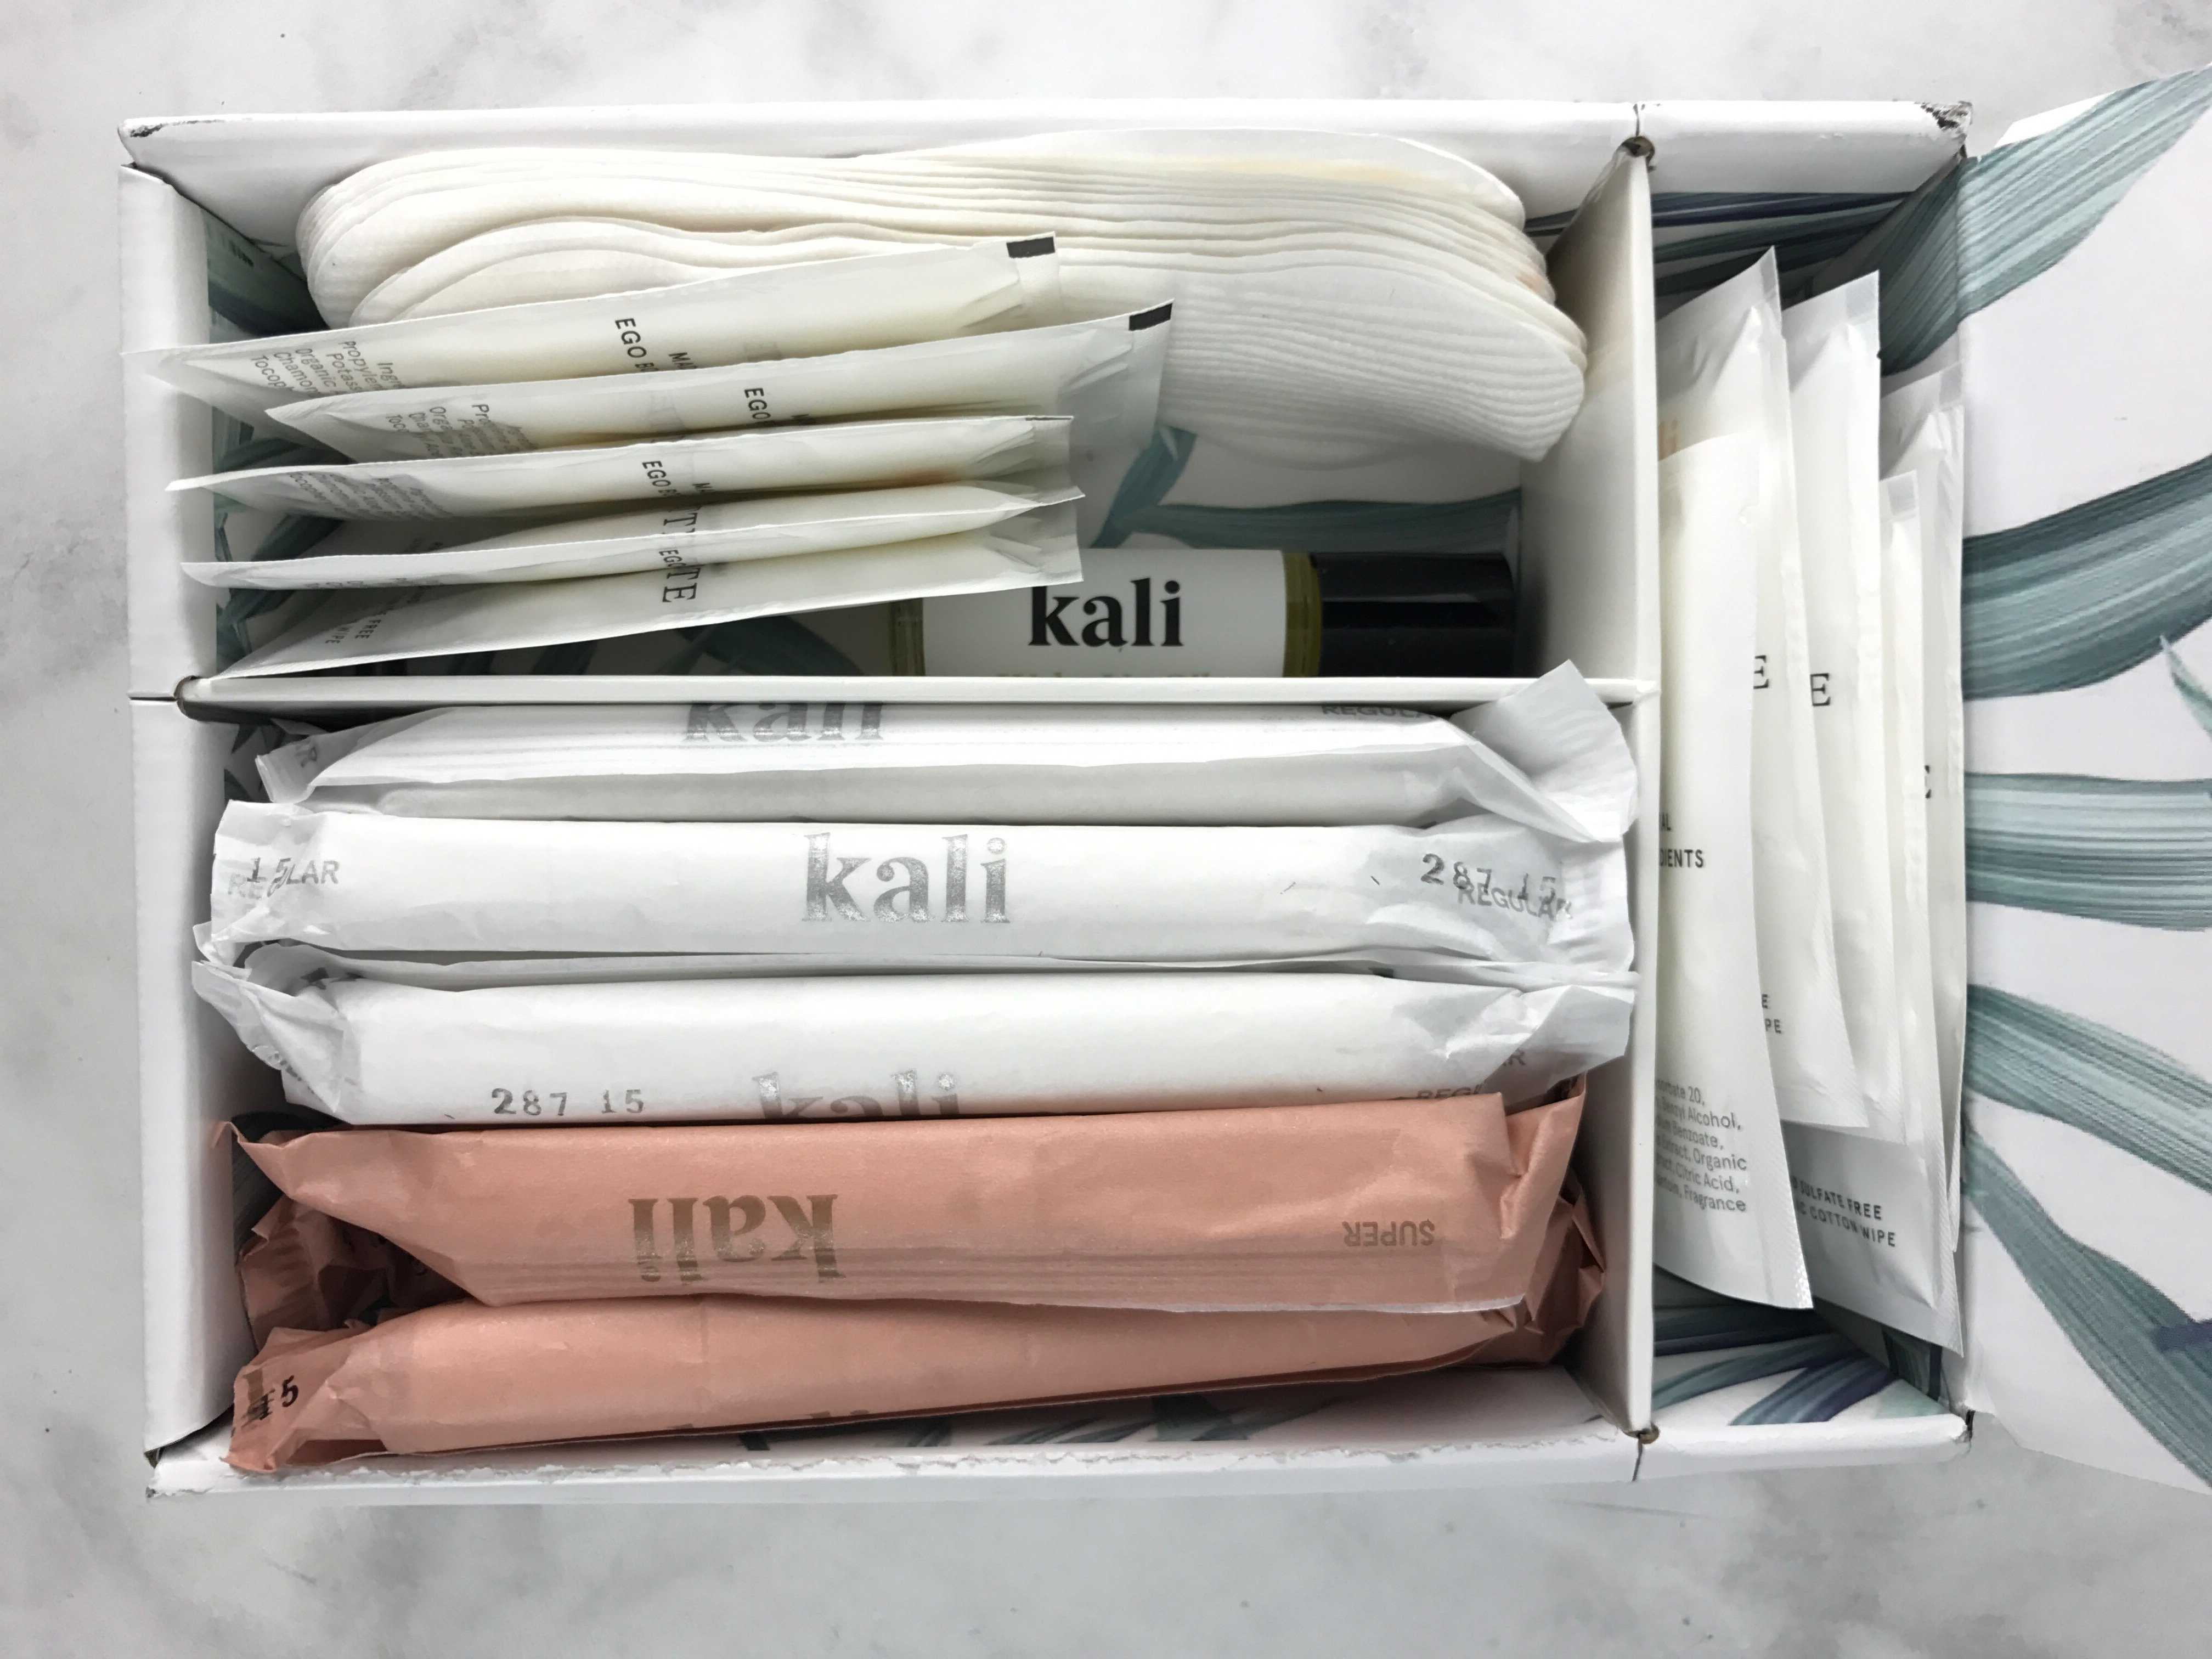 Kali Subscription Box Review & Coupon – February 2017